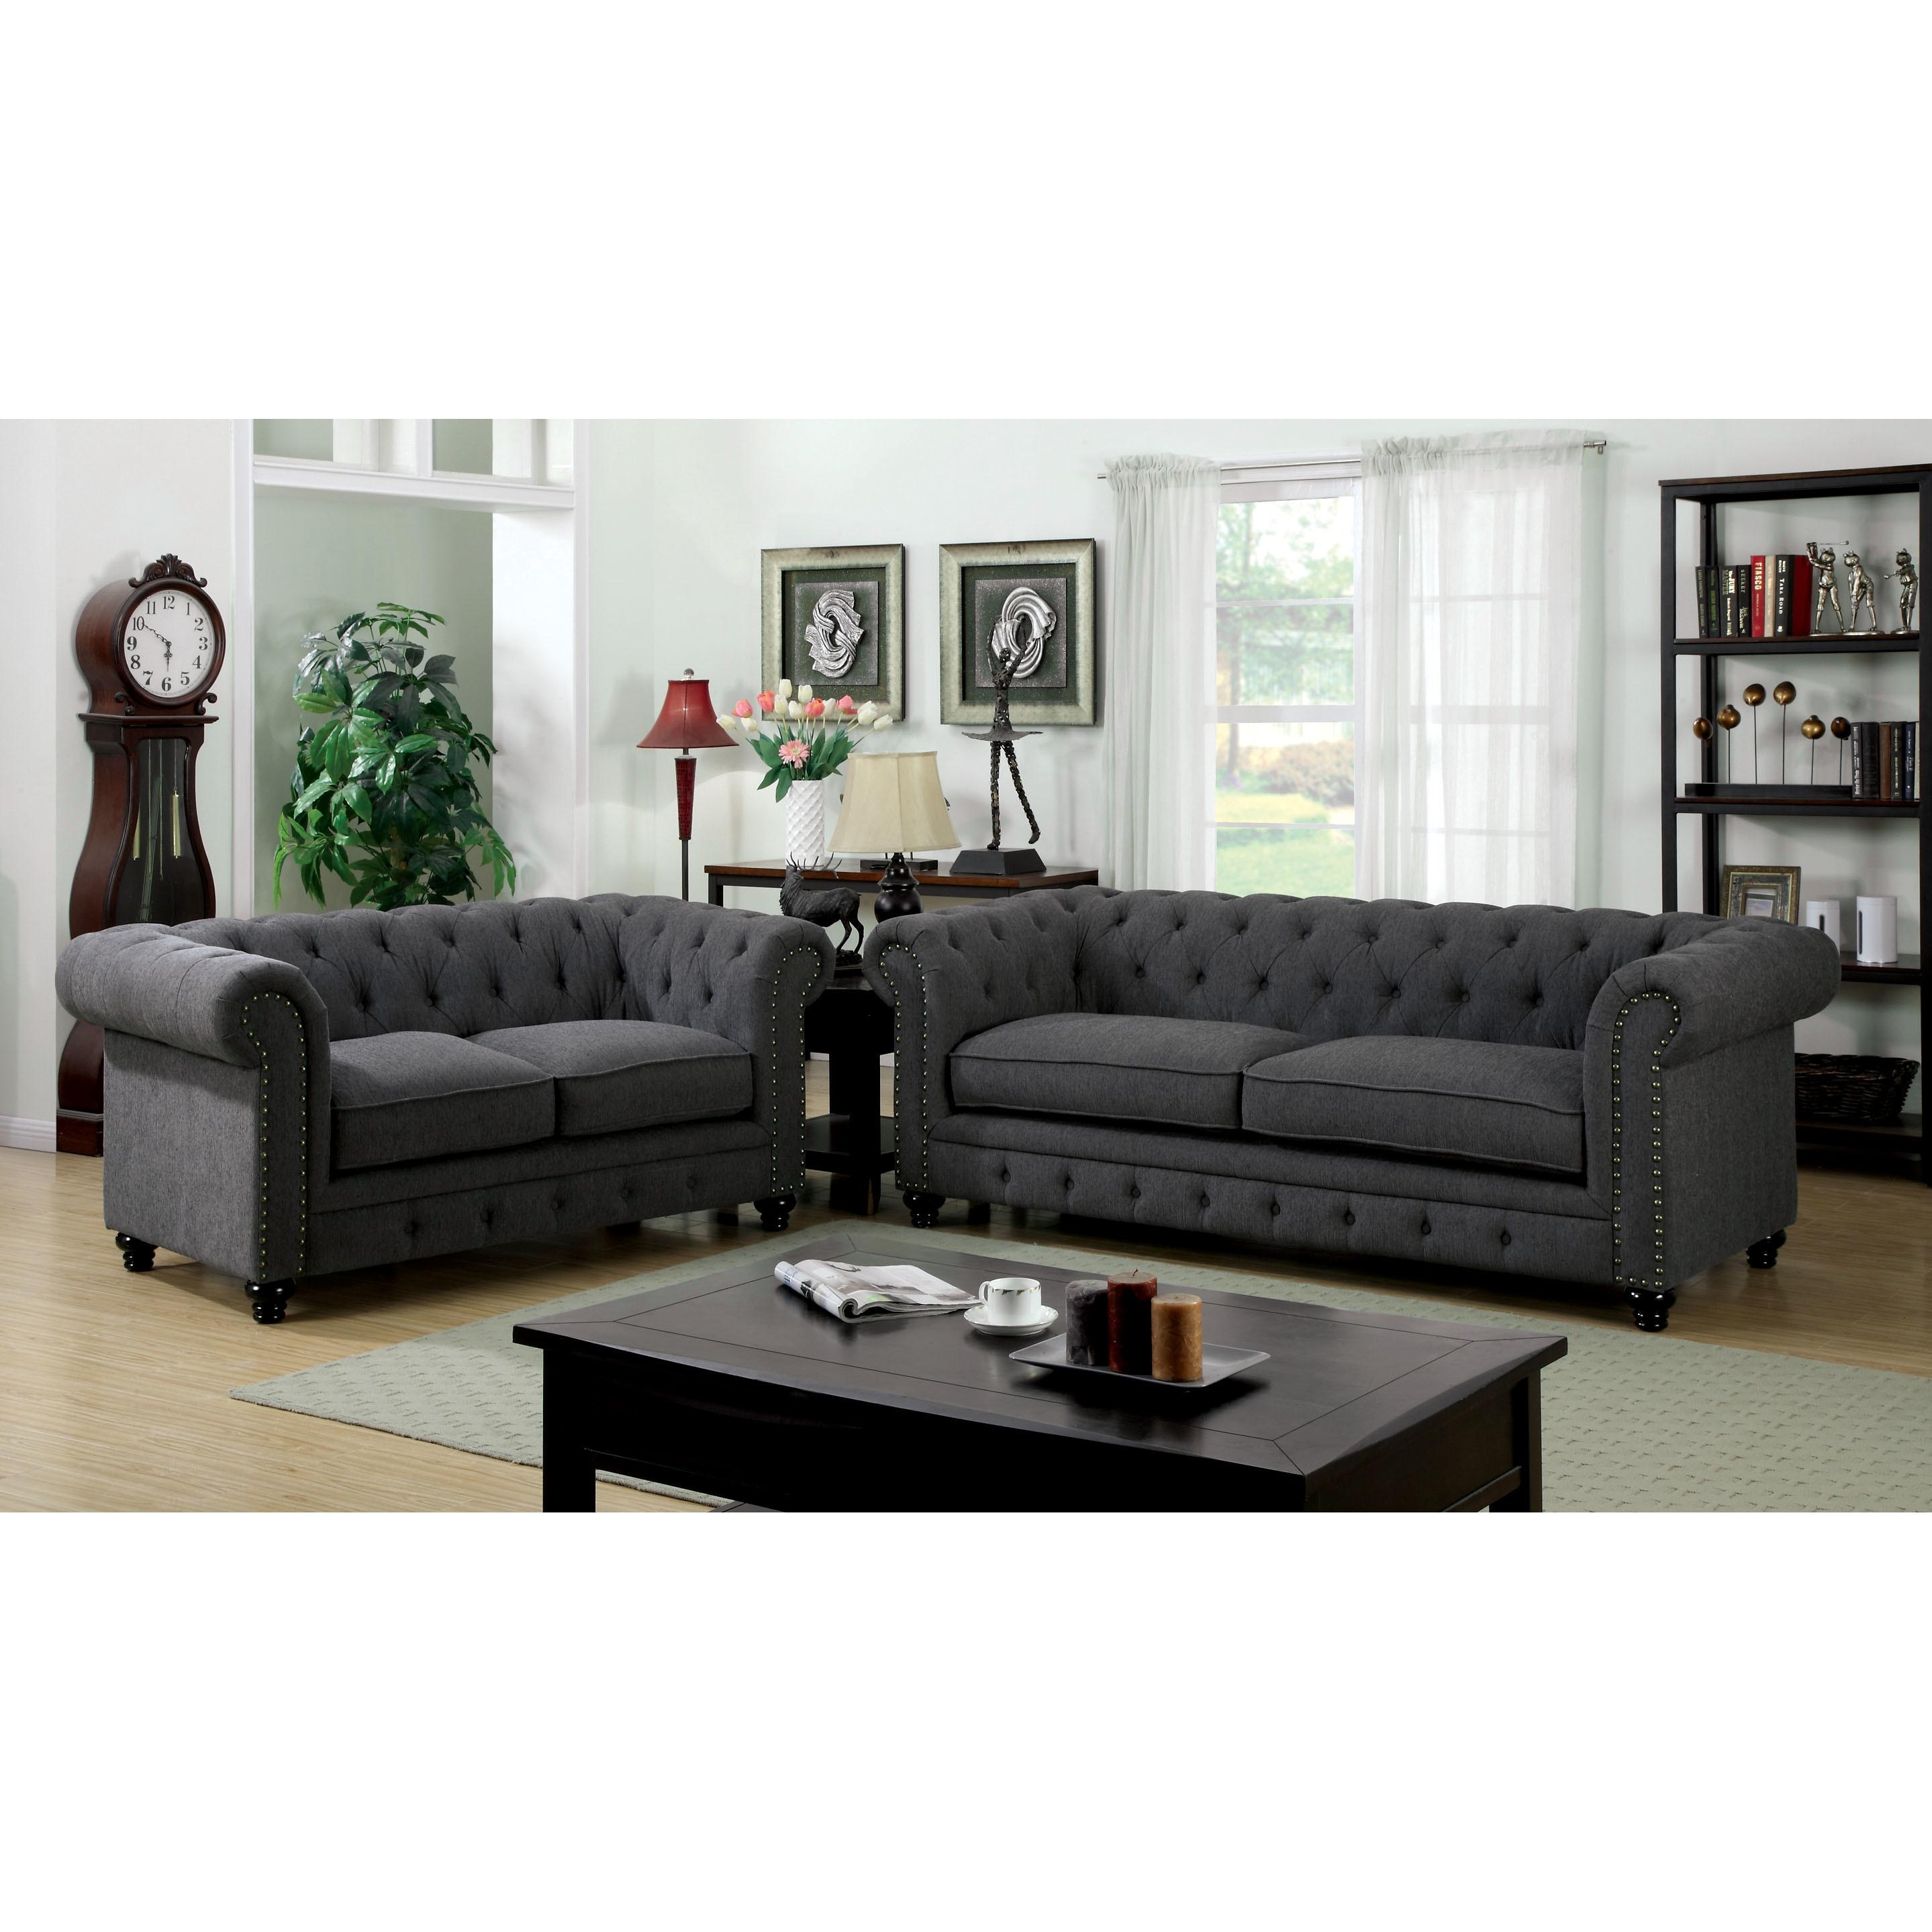 Cheap Tufted Sofa 88 With Cheap Tufted Sofa | Jinanhongyu Pertaining To Affordable Tufted Sofas (Image 15 of 20)